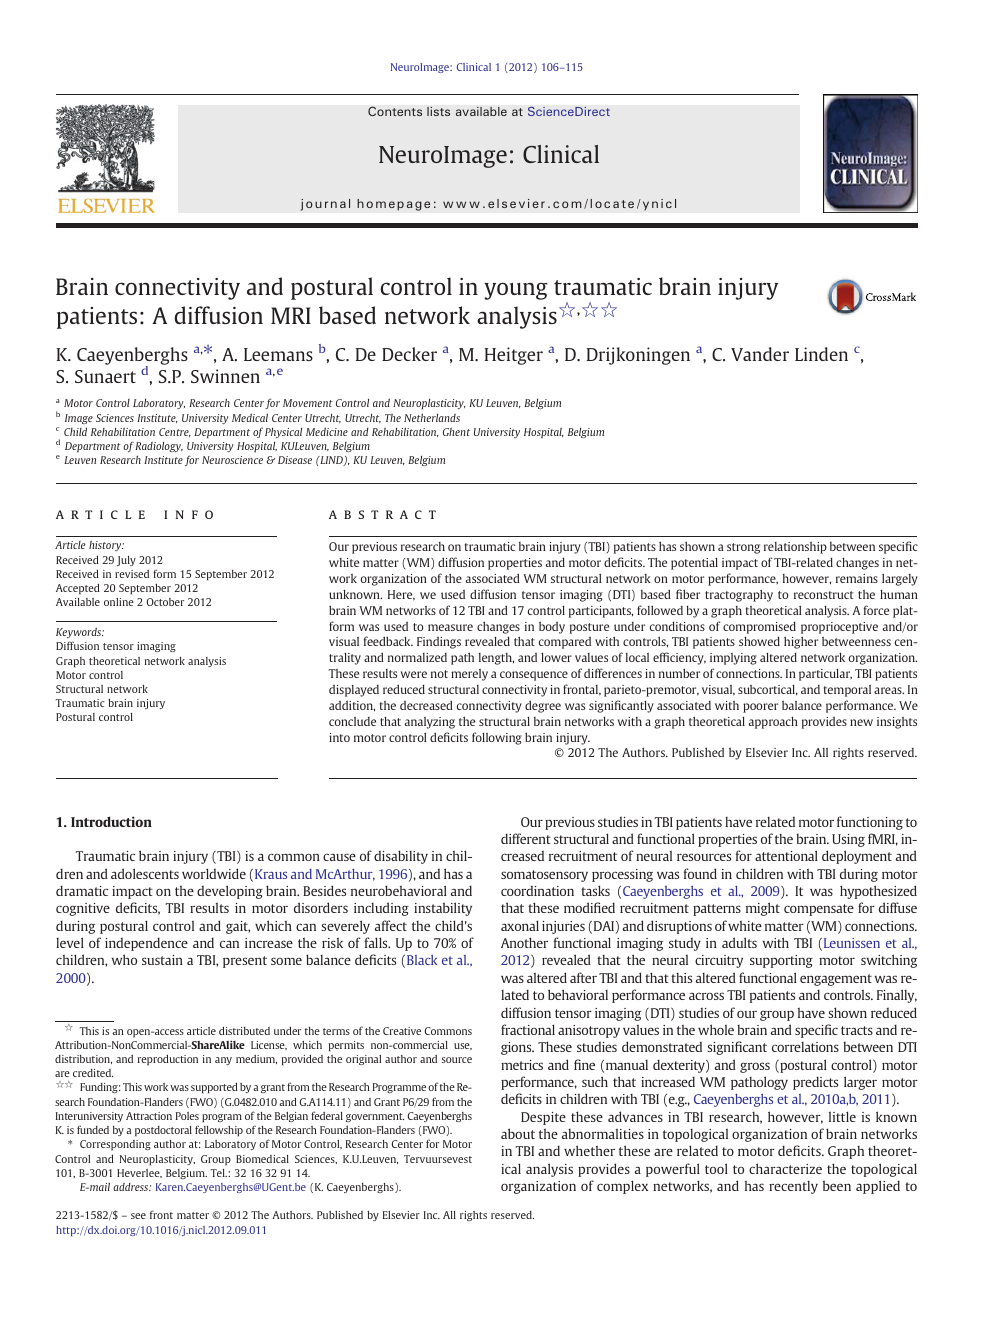 Brain connectivity and postural control in young traumatic